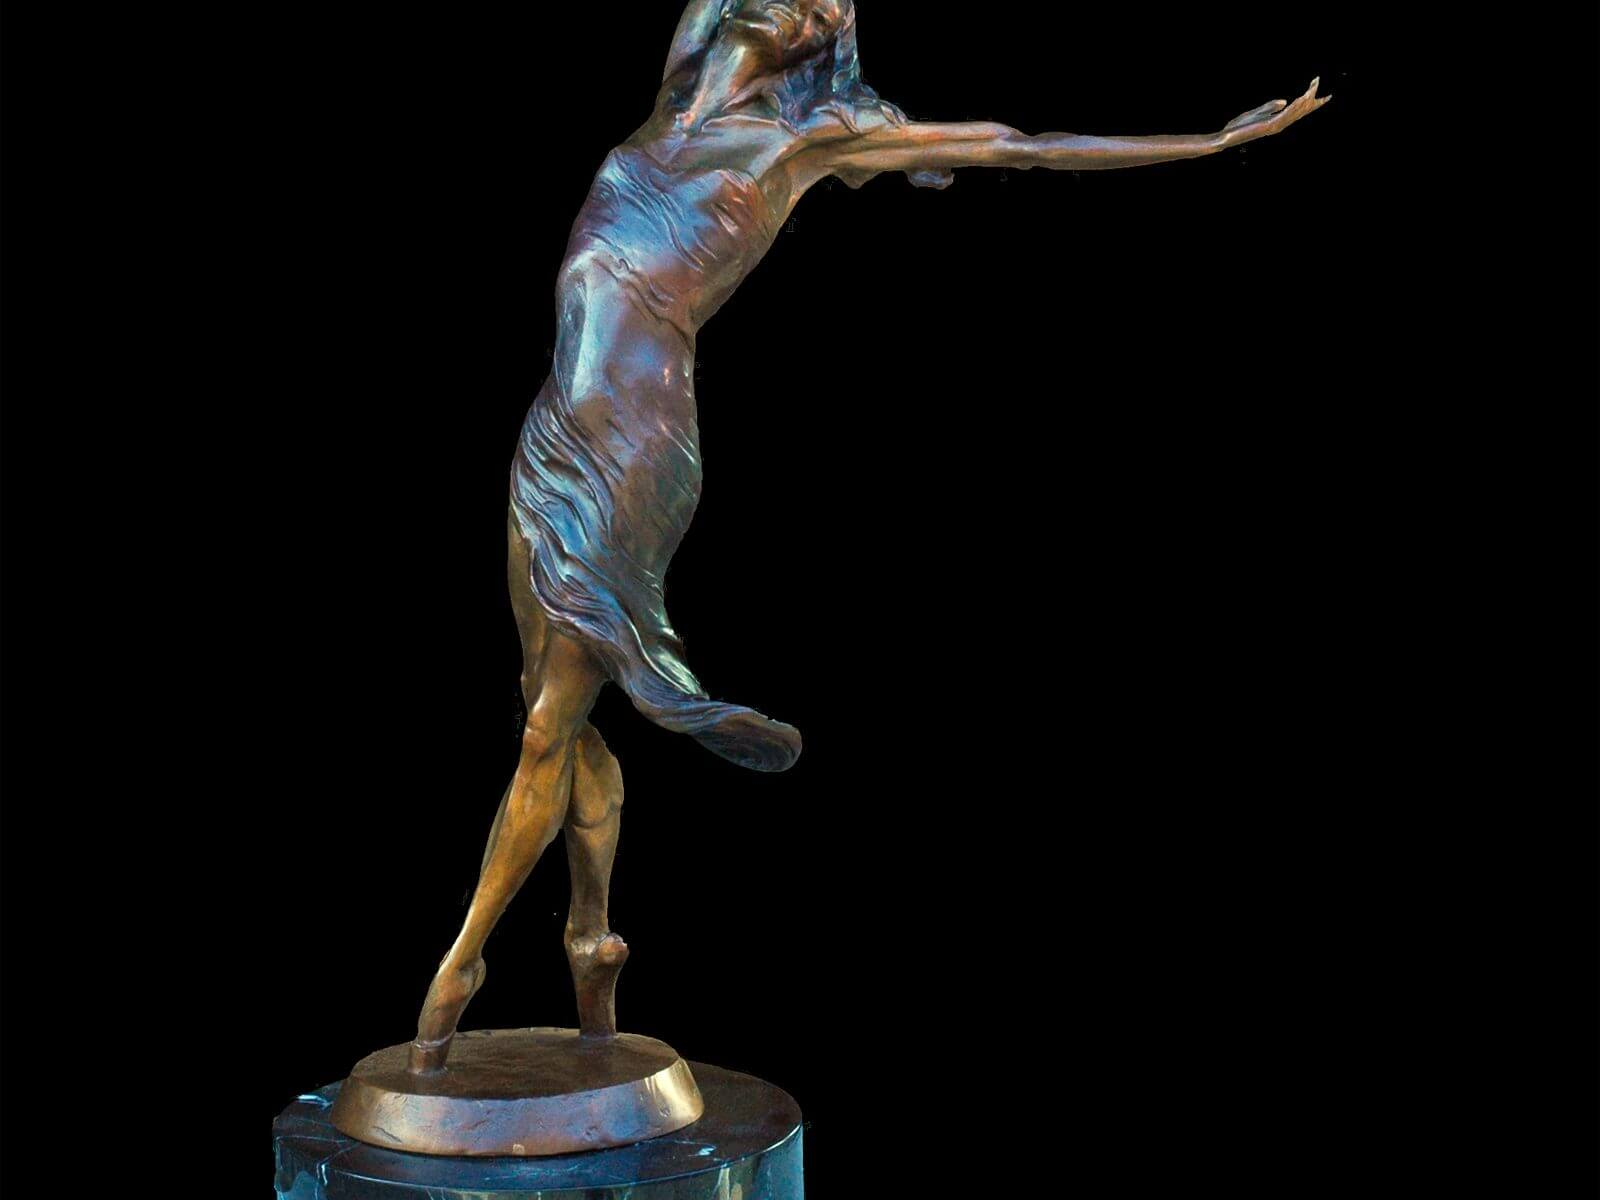 Invitation to dance a medium bronze ballet figurative dance sculpture by Andrew DeVries